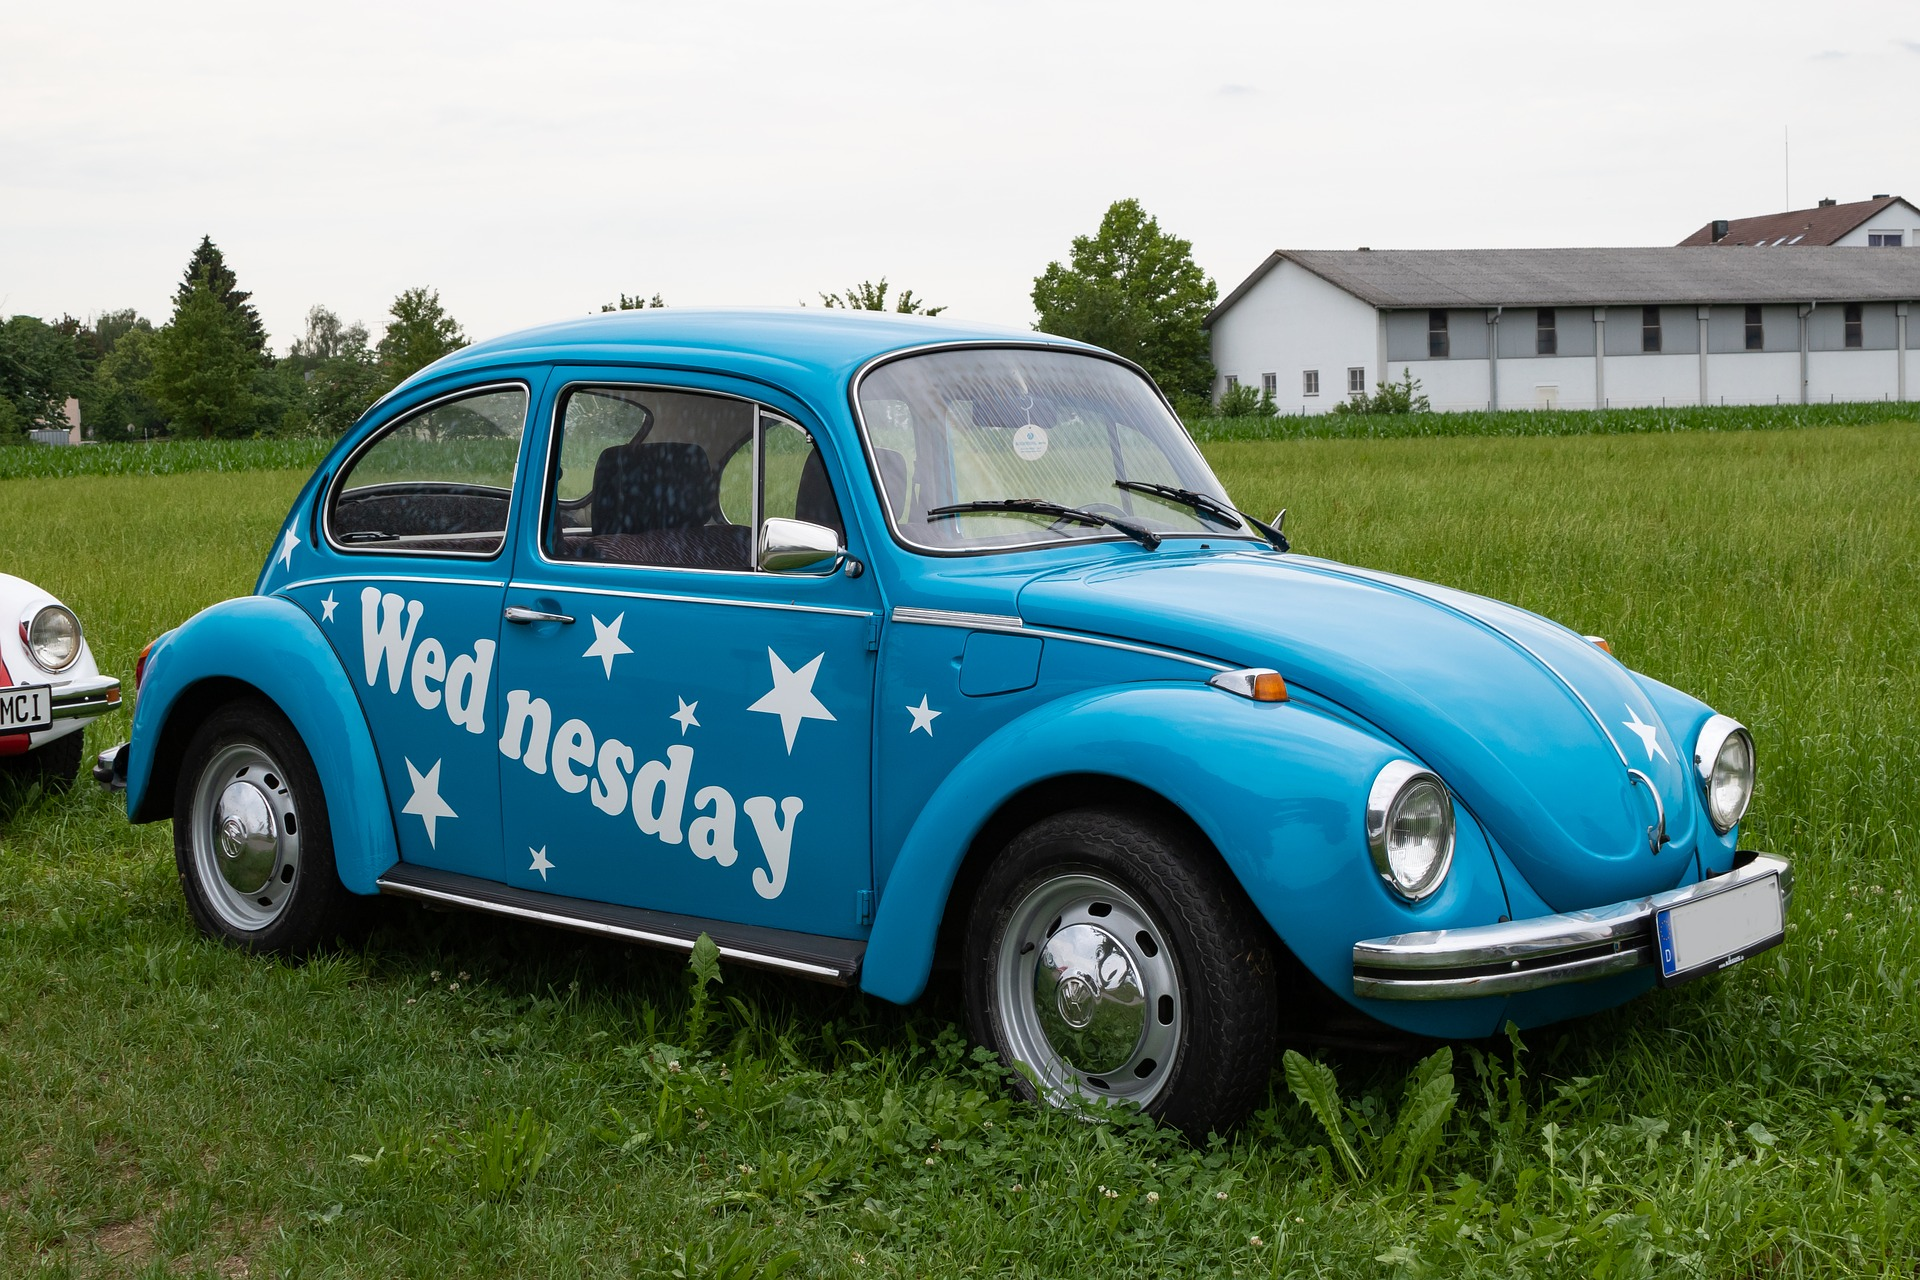 A VW but with the word \Wednesday\ written on it, wednesday instagram captions